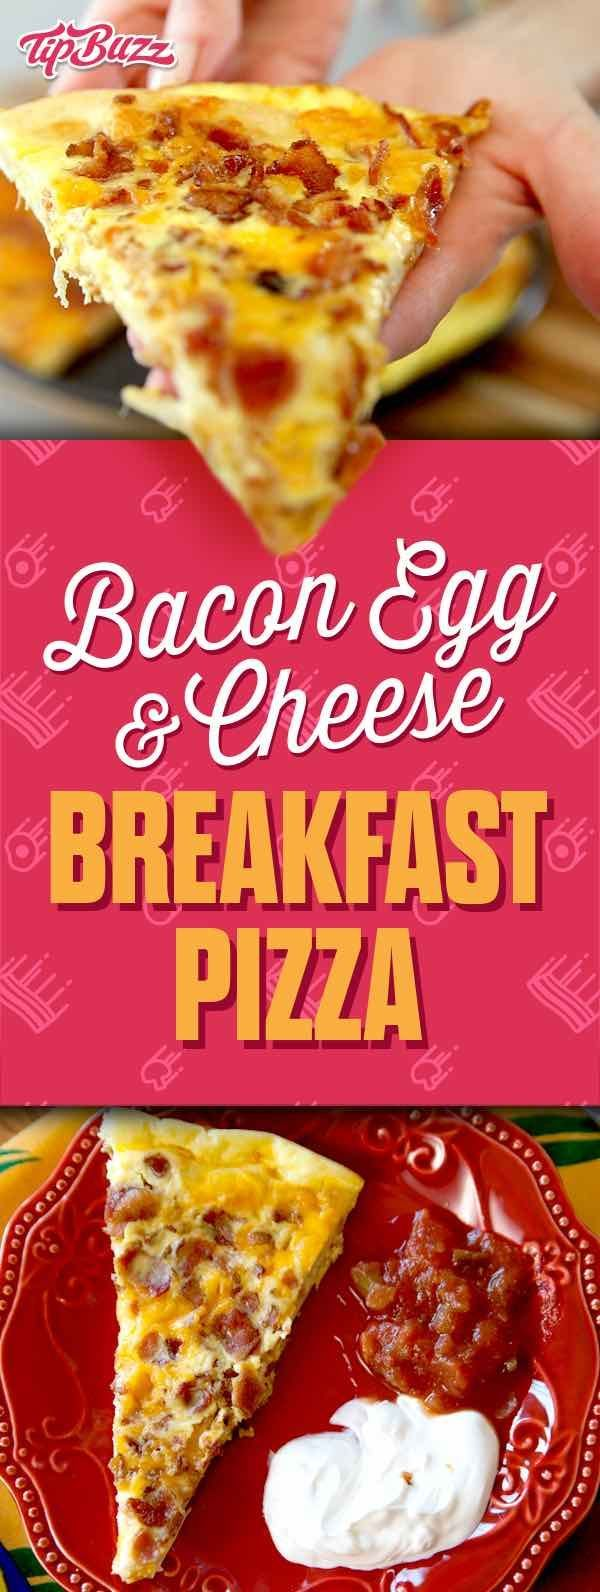 Bacon Egg & Cheese Pizza